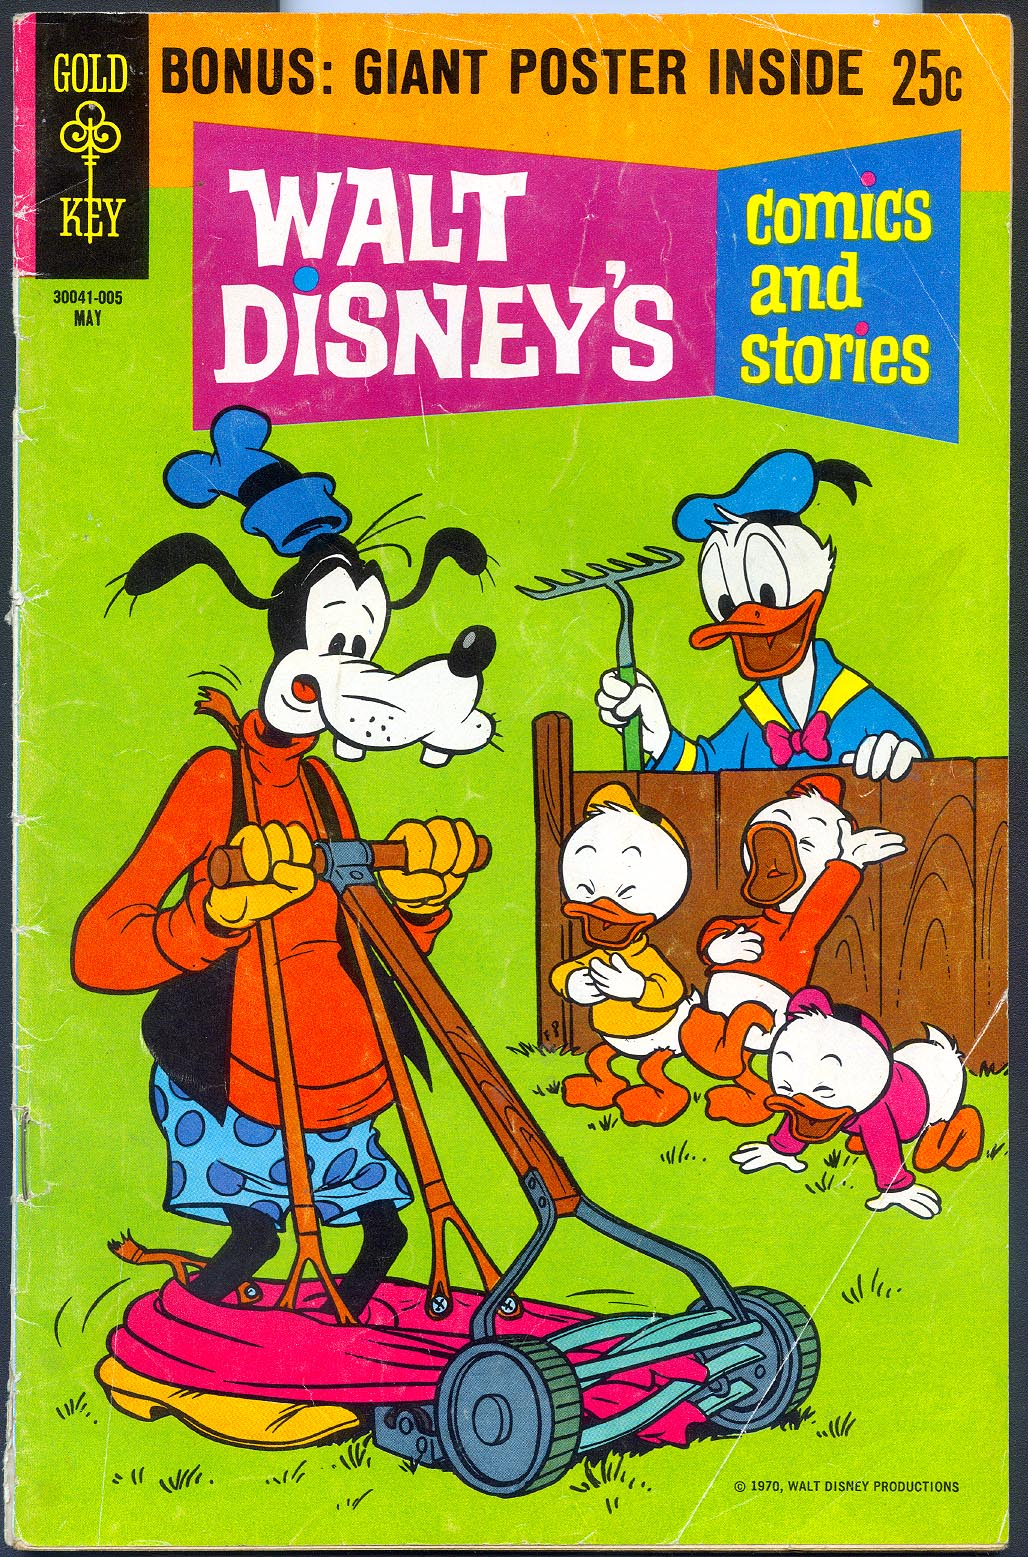 Walt Disneys Comics and Stories (Gold Key) 356 Giant Poster Edition (no poster) (Also Vol 30 - 8 ) -VG